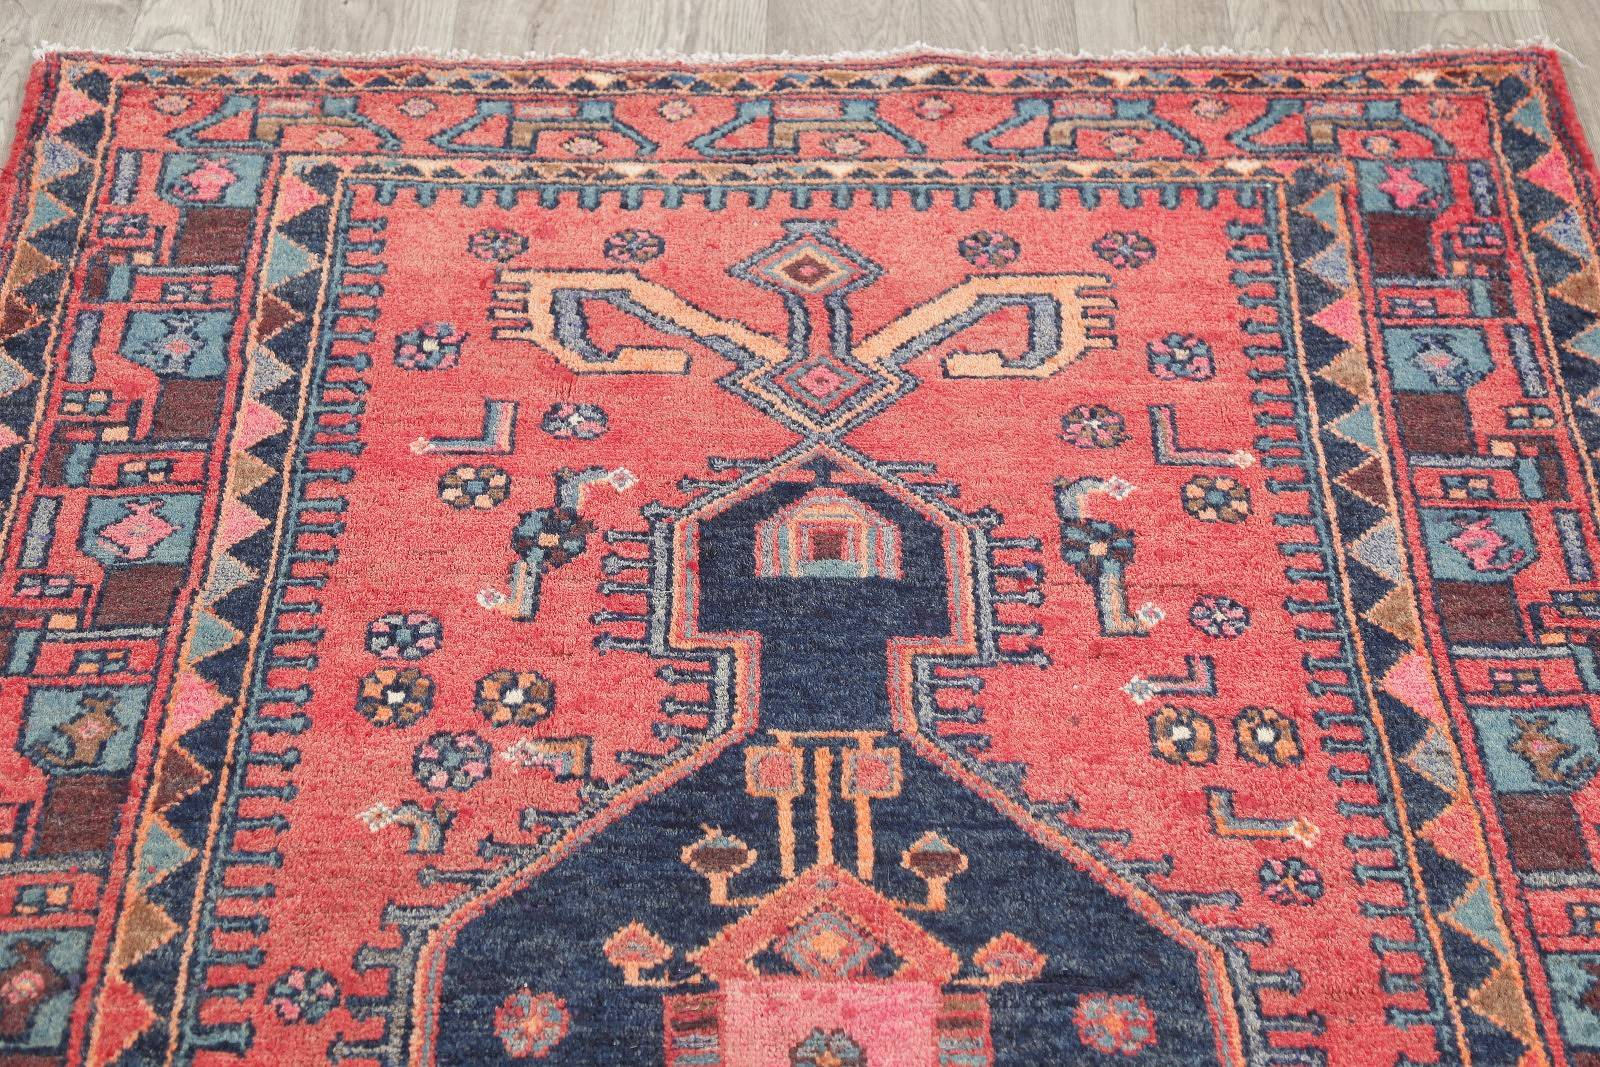 Geometric Red Hamedan Persian Hand-Knotted Area Rug Wool 4x7